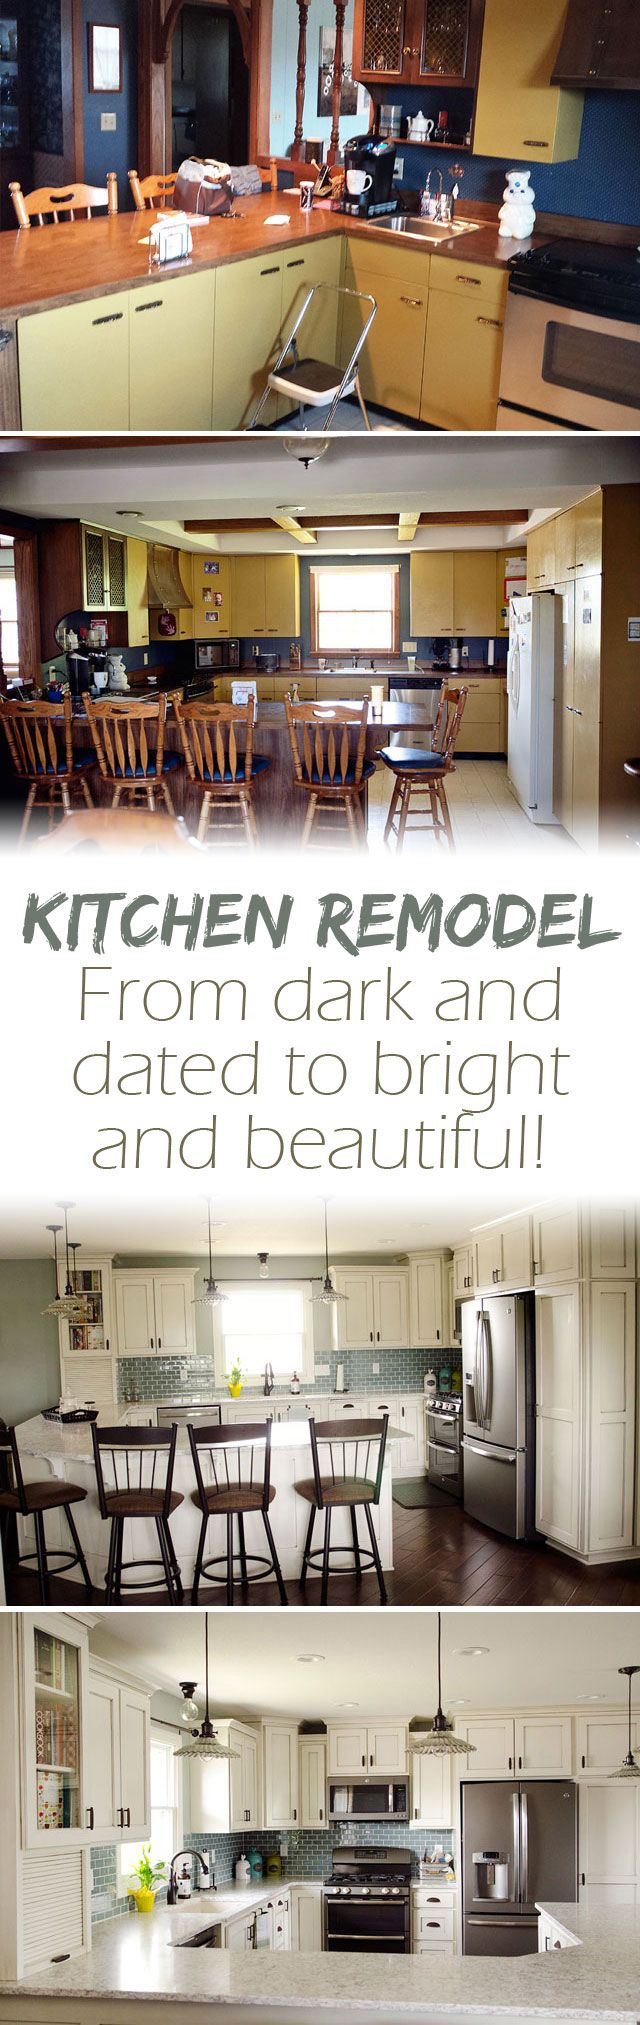 New Kitchen Remodel House Tour - Before & After photos and details of a complete kitchen transformation. #Remodel #Kitchen #BeforeAndAfter #KitchenRemodel